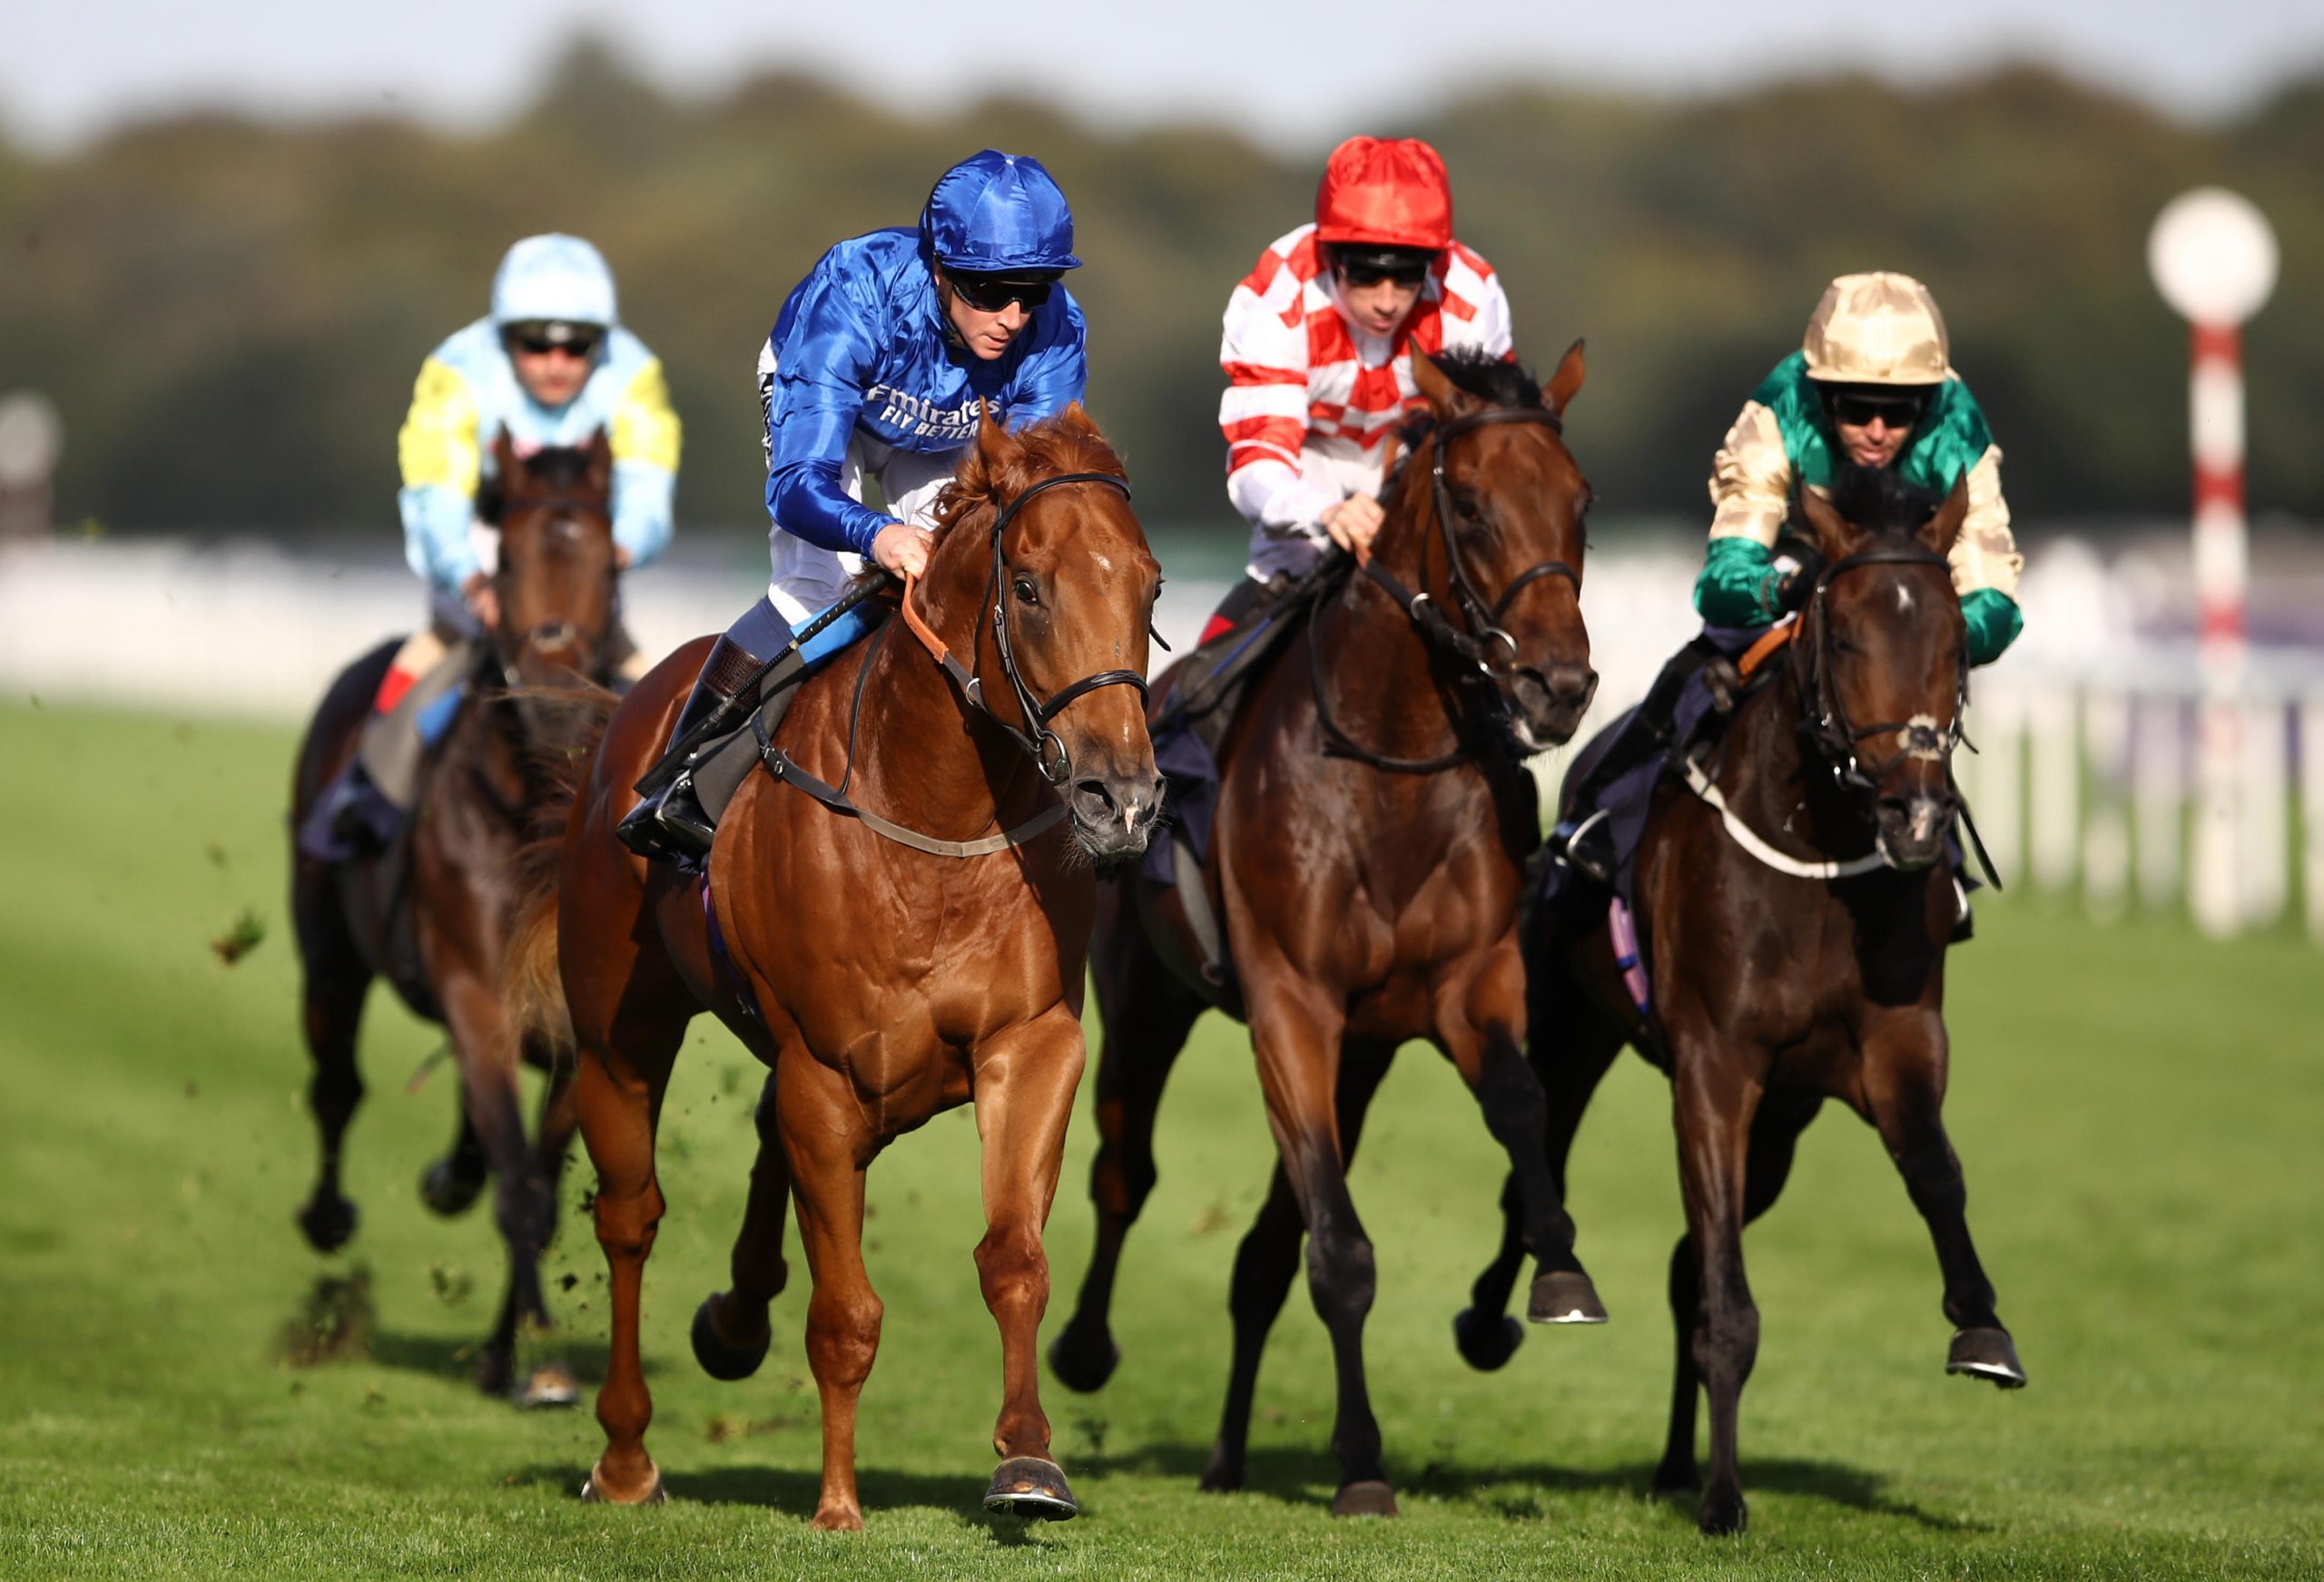 Raaeb ridden by Jim Crowley wins the Gary Reid Memorial Irish EBF Maiden Stakes during day three of the William Hill St Leger Festival at Doncaster Racecourse.